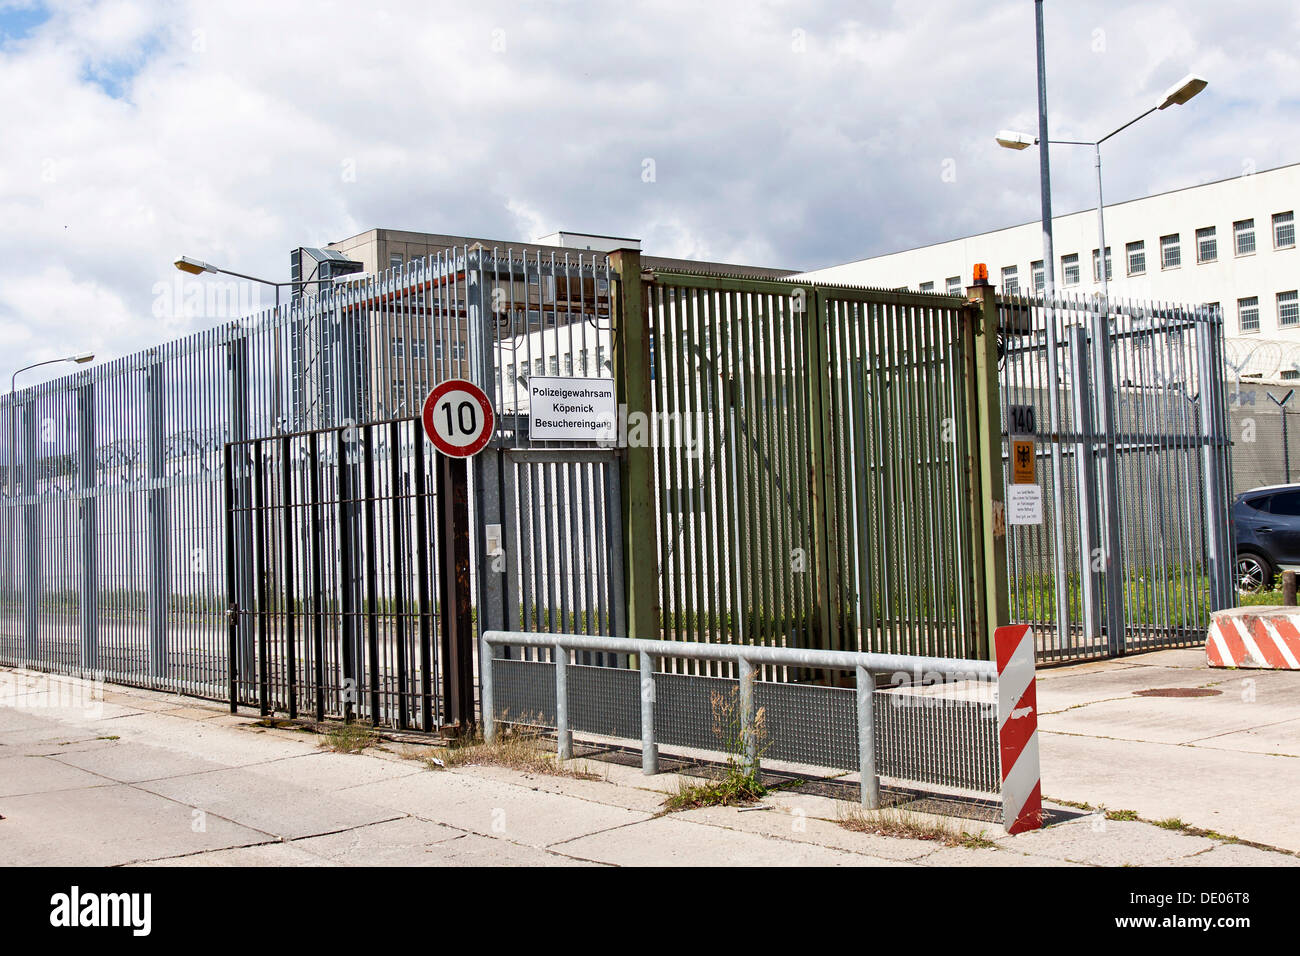 Police custody, detention, Dir ZA Gef 2, deportation facility, prison, Federal Office for Migration and Refugees in Berlin - Stock Image